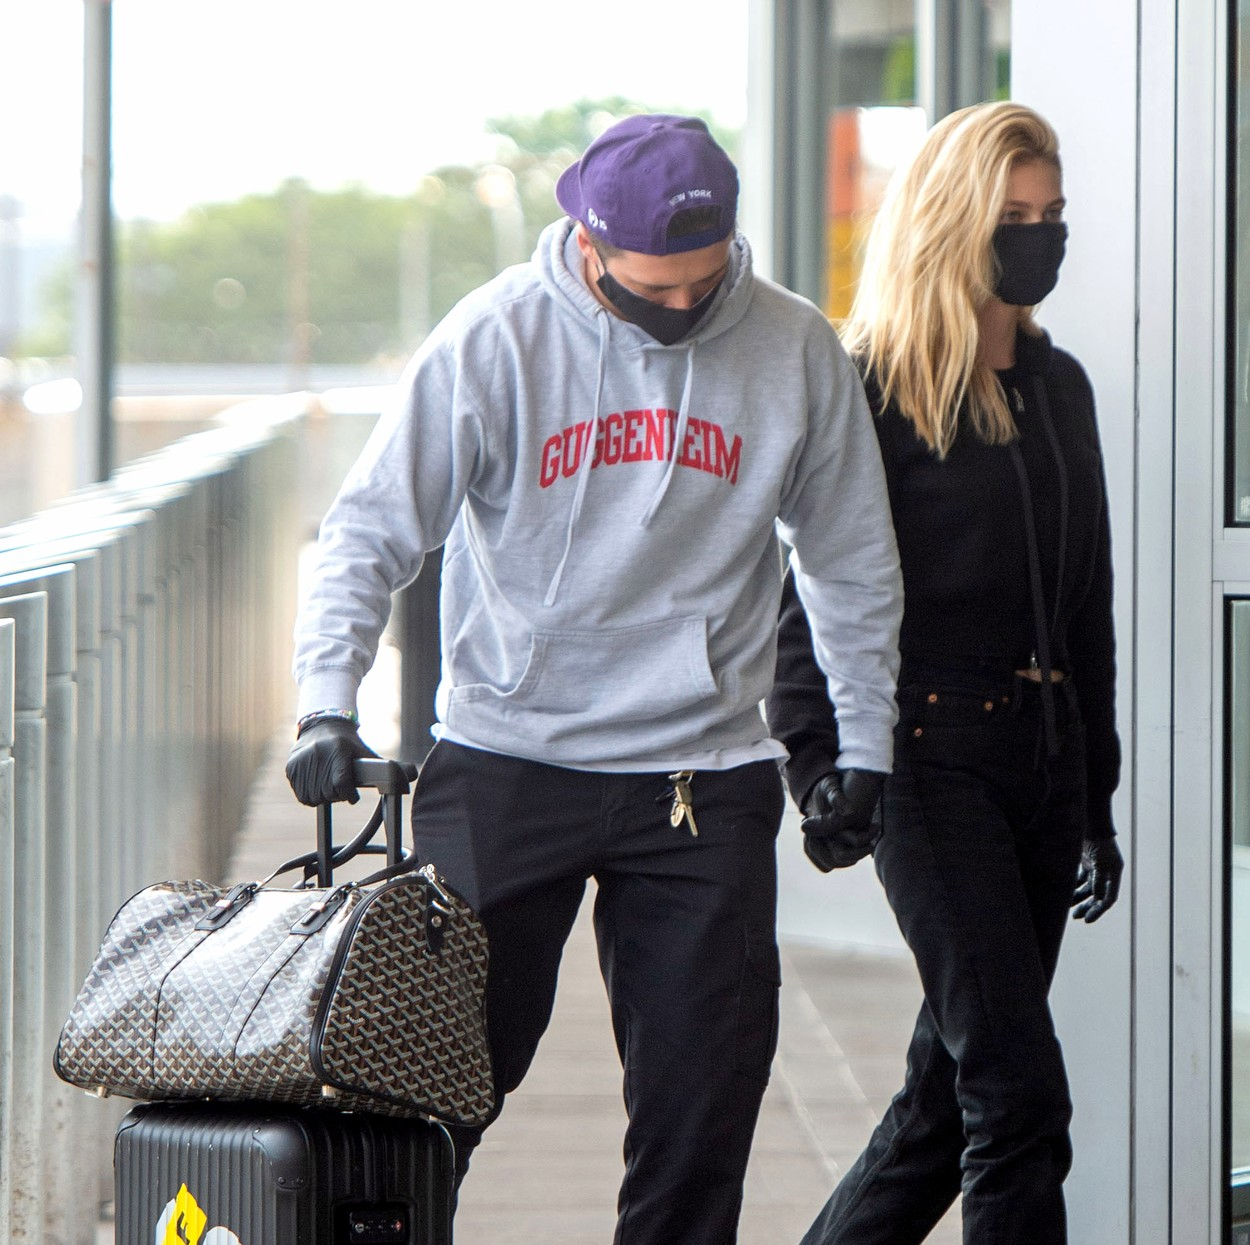 06/25/2020 EXCLUSIVE: Brooklyn Beckham with girlfriend Nicola Peltz arrive at JFK Airport in New York City to catch a flight out. The inseparable couple were pictured with an array of high end luggage including a Chanel quilted bag, Goyard duffle bag, and a Supreme suitcase. Nicola, 25, wore a black hoodie, matching Levi jeans, and chunky Prada boots. **VIDEO AVAILABLE**,Image: 536055119, License: Rights-managed, Restrictions: Exclusive NO usage without agreed price and terms. Please contact sales@theimagedirect.com, Model Release: no, Credit line: TheImageDirect.com / The Image Direct / Profimedia